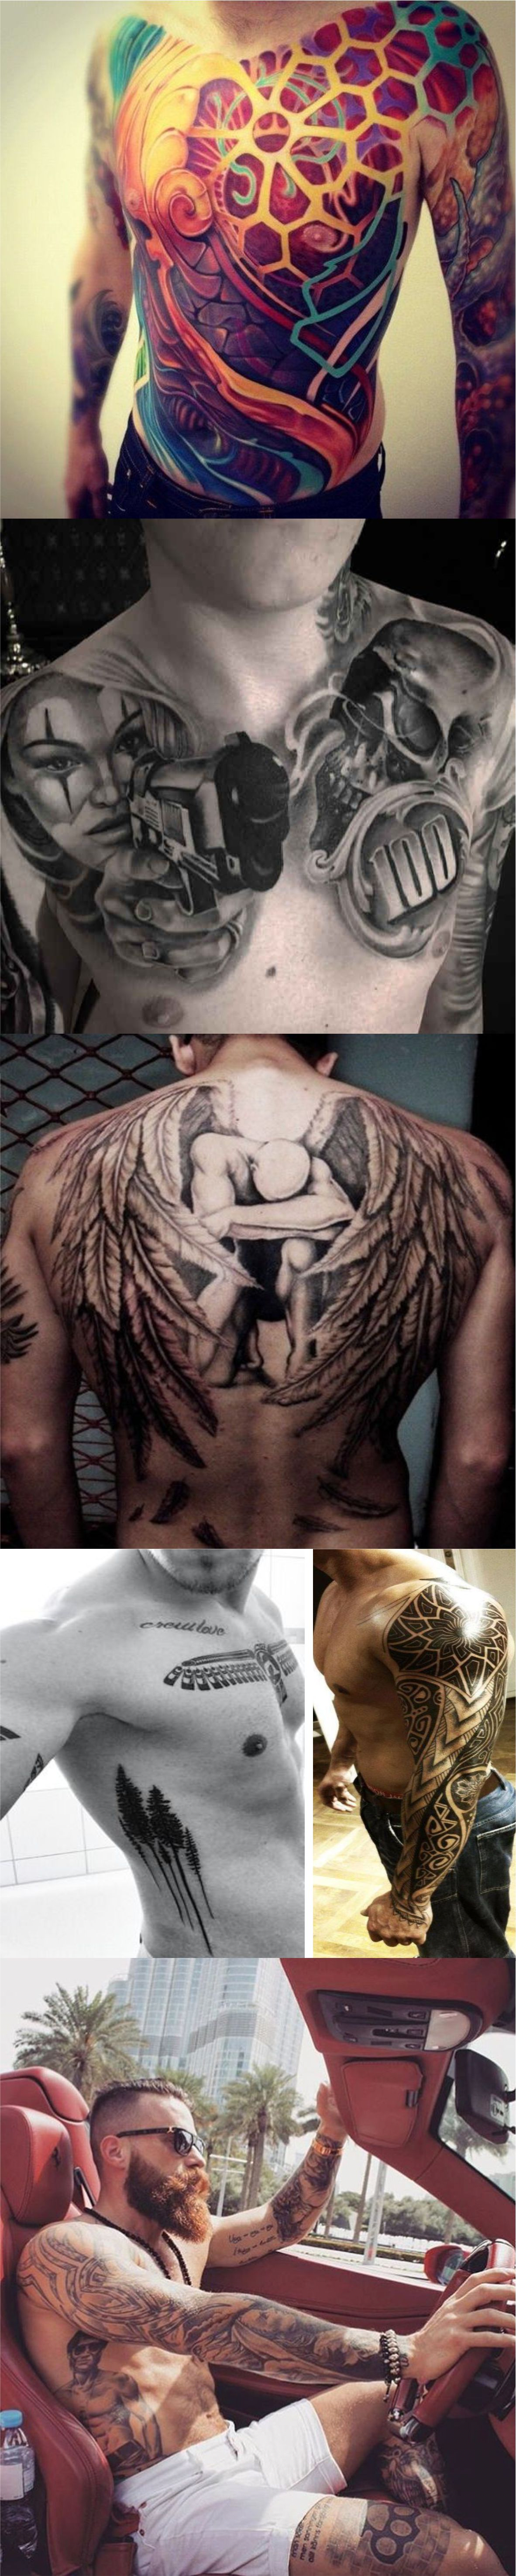 Best tattoos for men to try now 2018